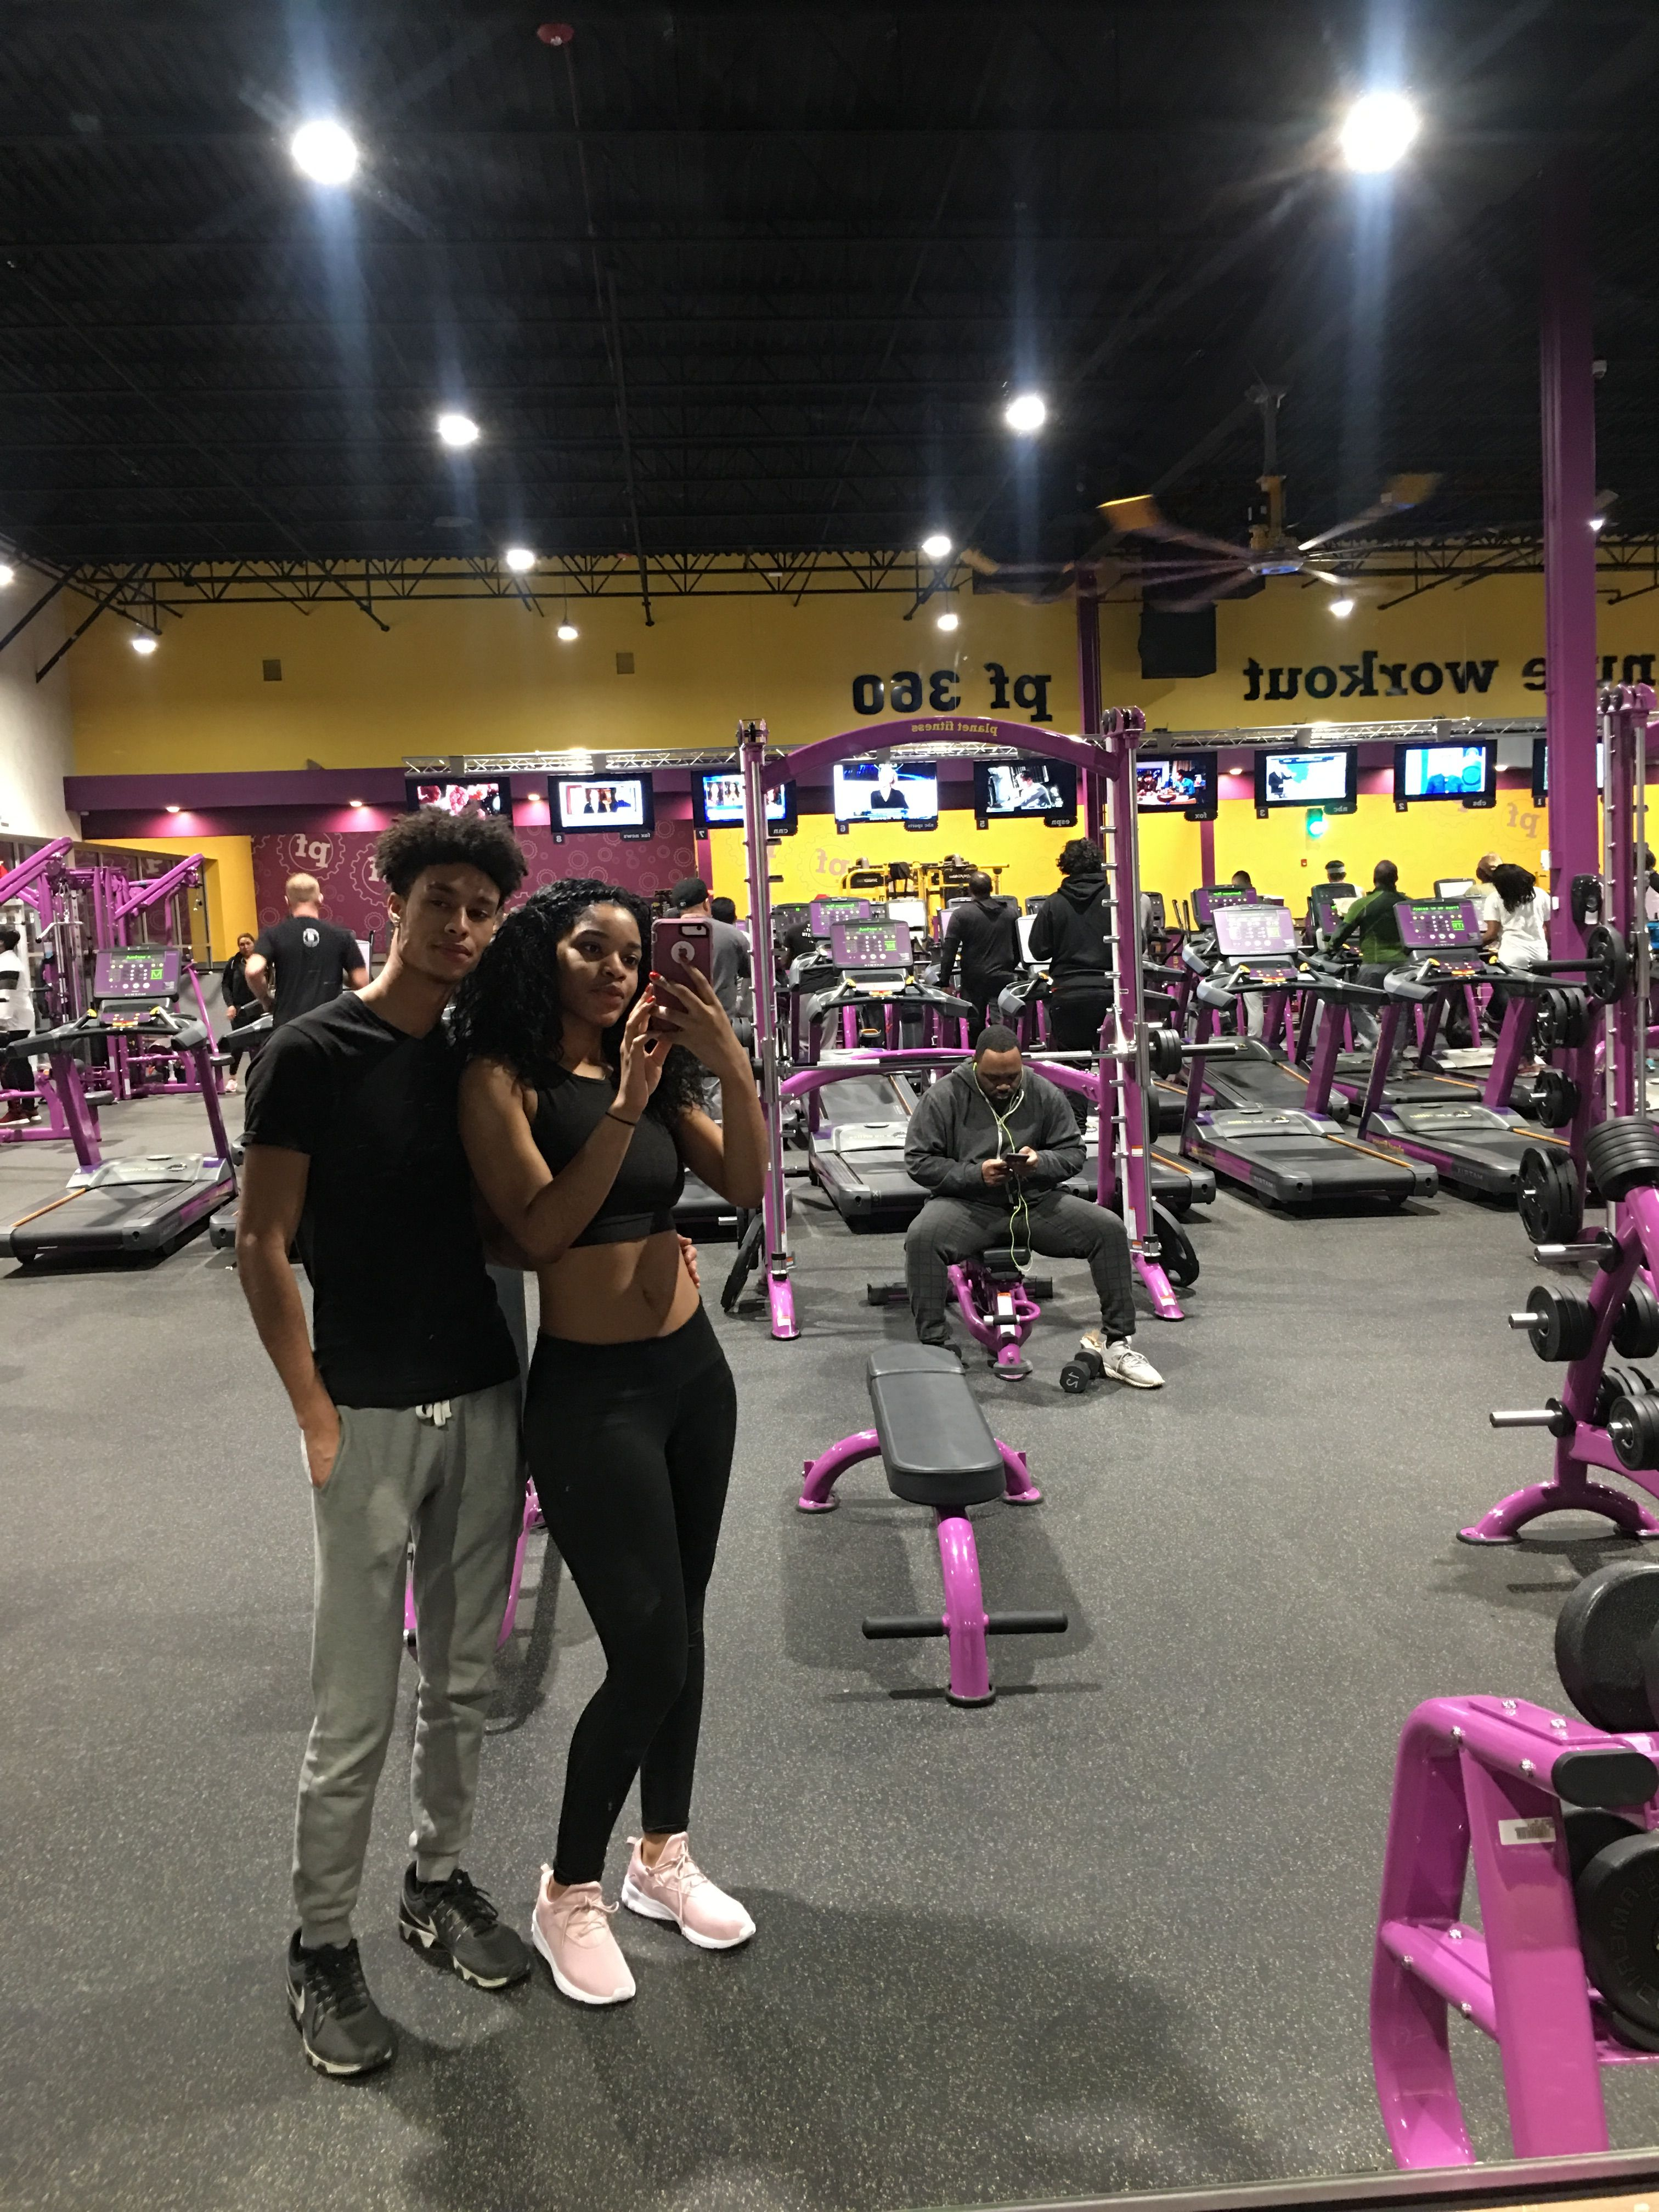 Relationshipgoals Fitness Fit Abs Lightskincouple Fitnesspartners Curlyhair Relationship Goals Planet Fitness Workout Relationship Goals Relationship